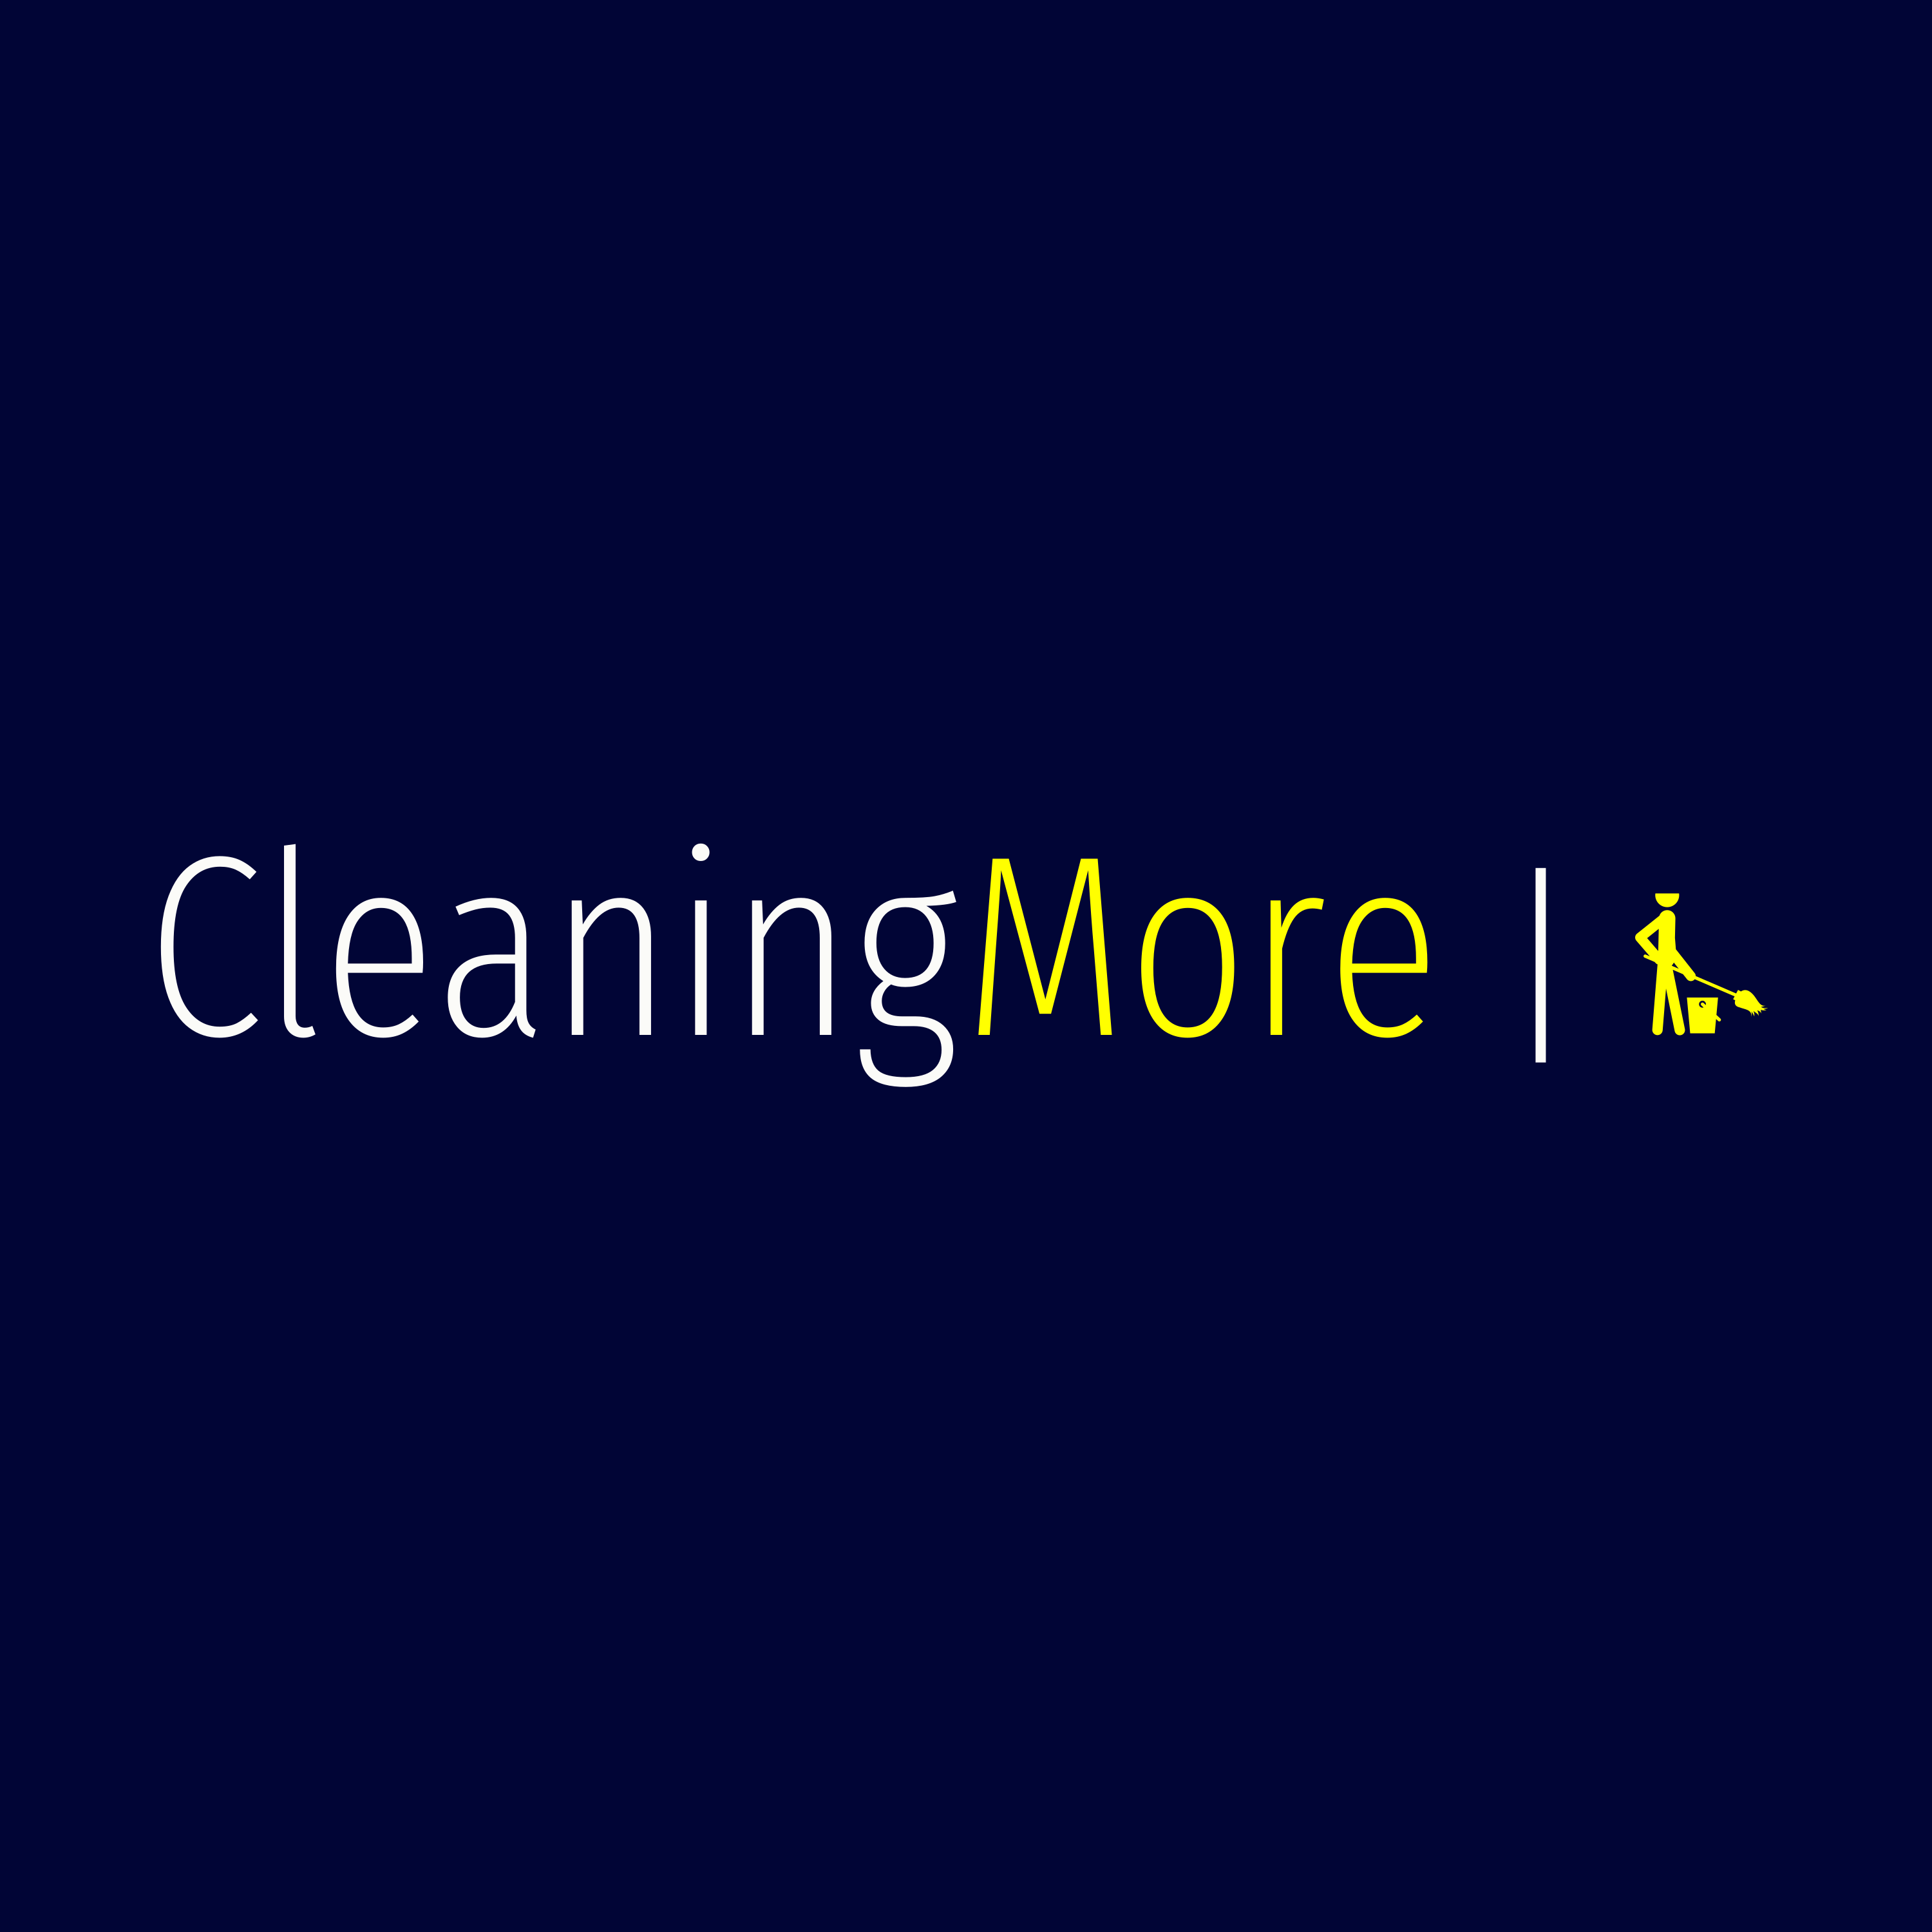 Cleaning More